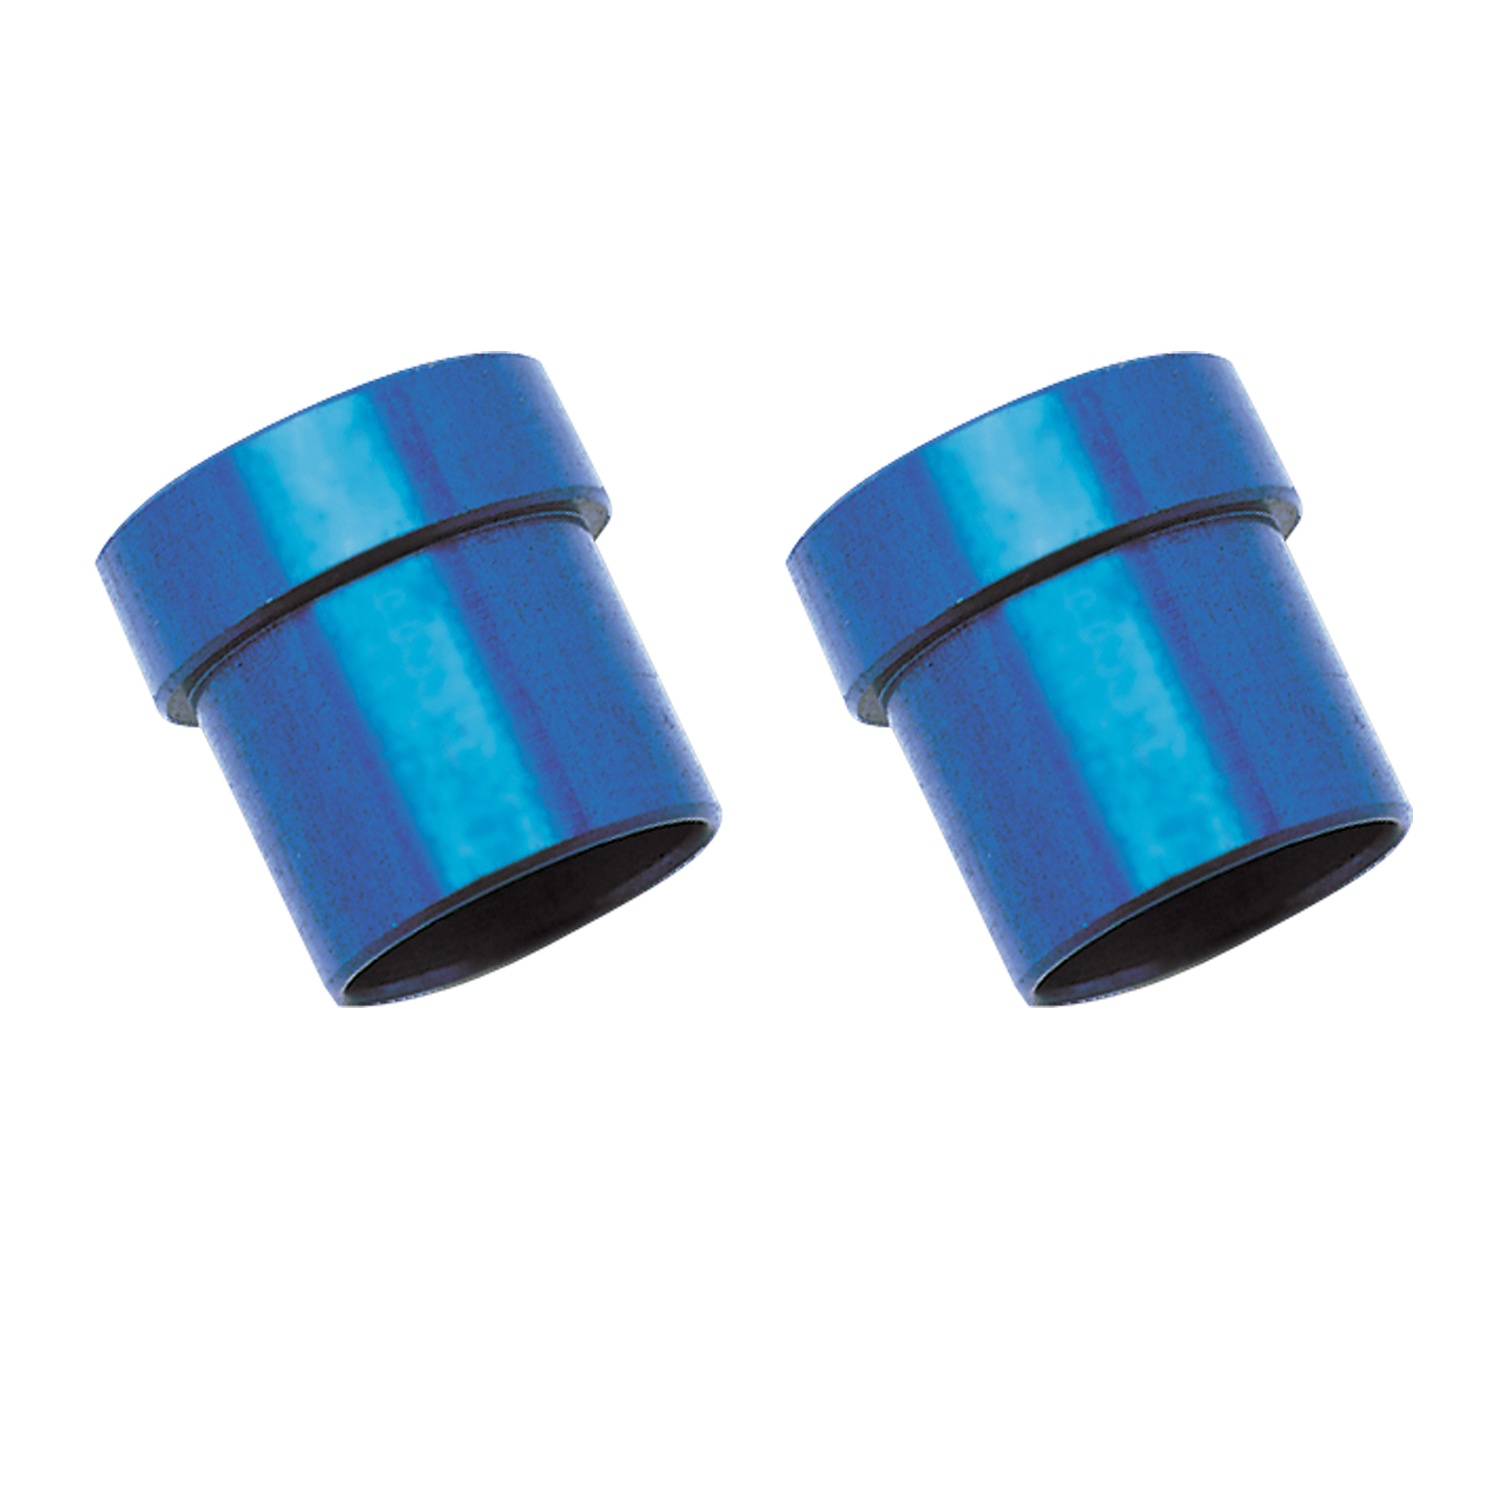 Russell 660650  Tube End Fitting Sleeve - image 1 of 1